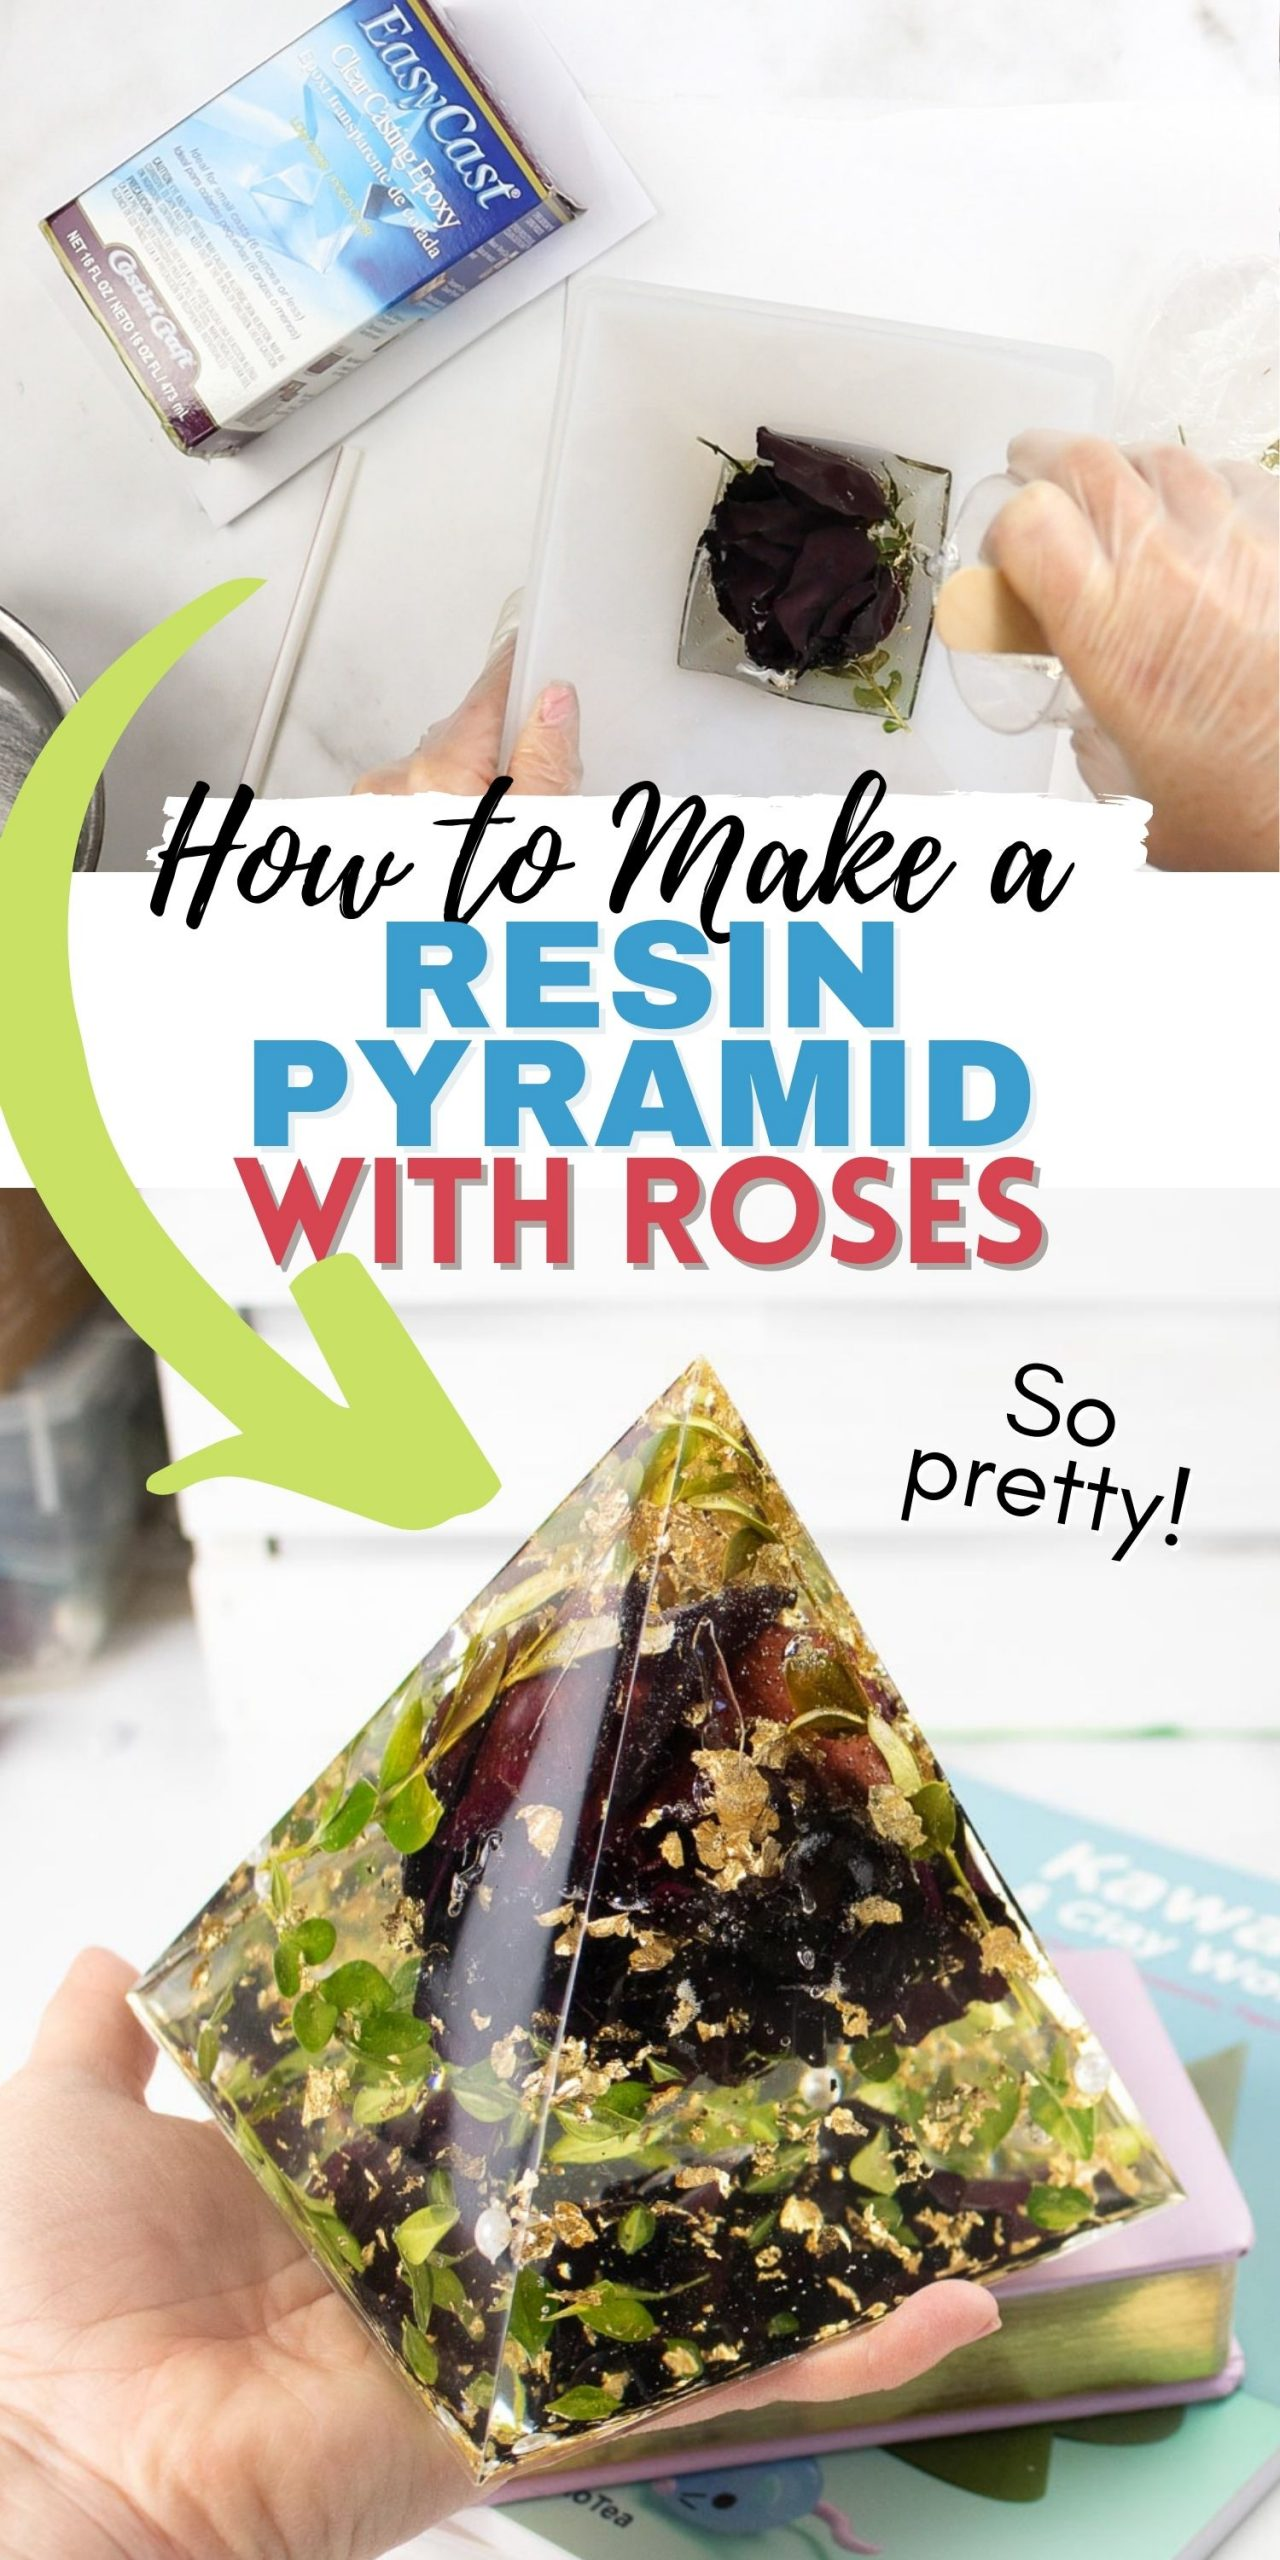 """Collage of images including pouring of resin in a pyramid mold and the completed resin pyramid on a stack of books. The text overlay reads """"How to make a resin pyramid with roses""""."""